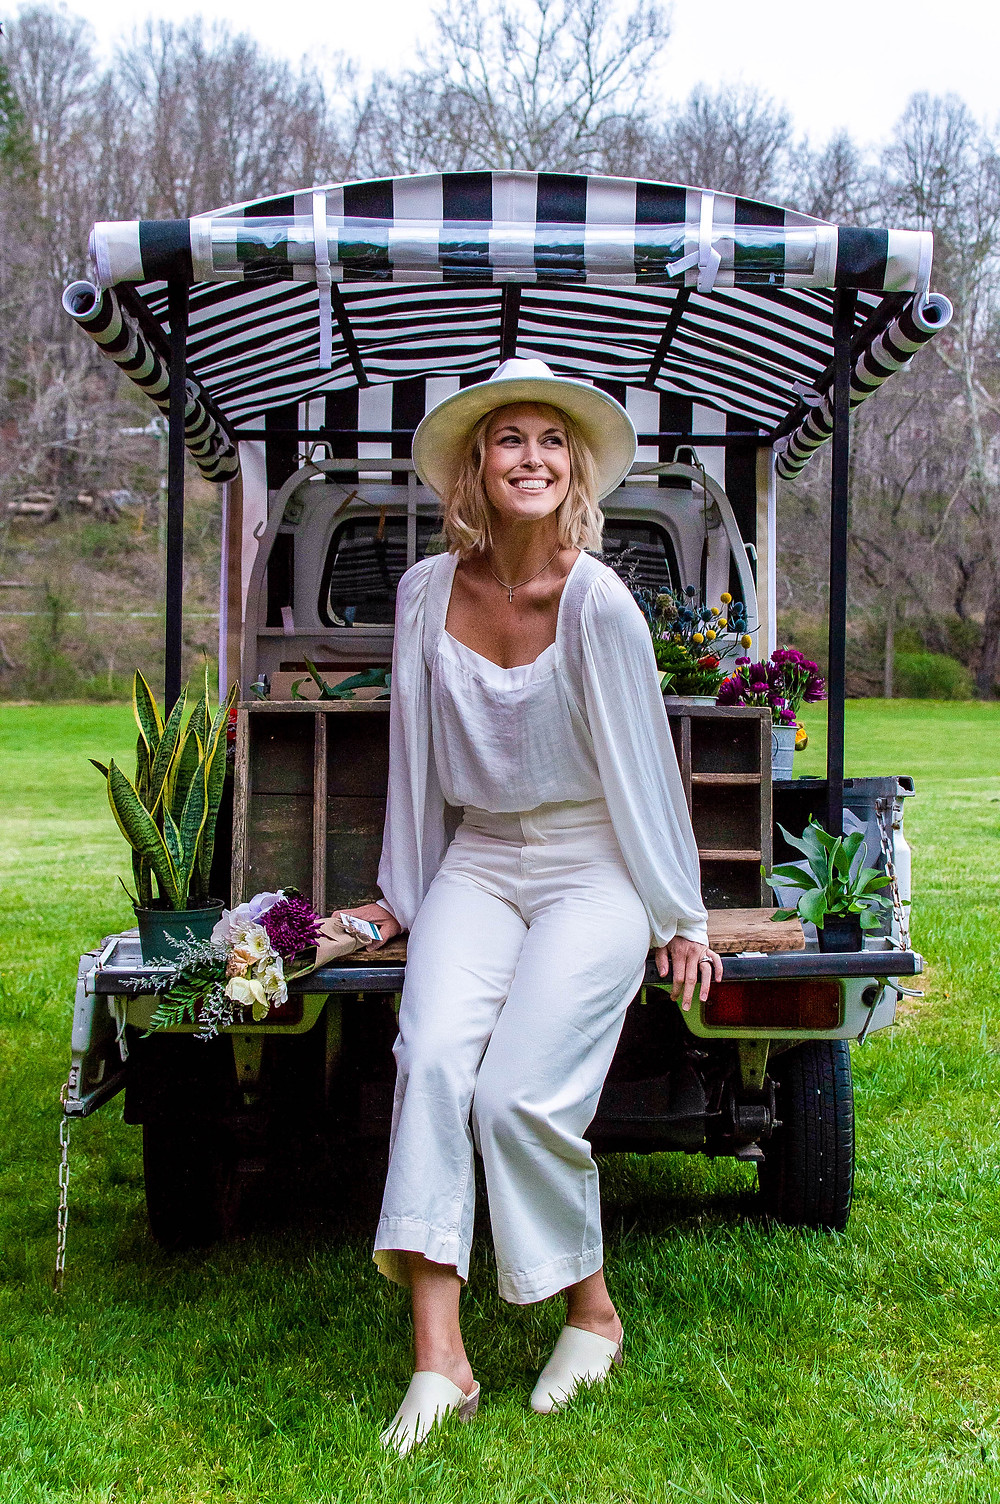 Woman wearing all white outfit sits on back of flower truck bed.